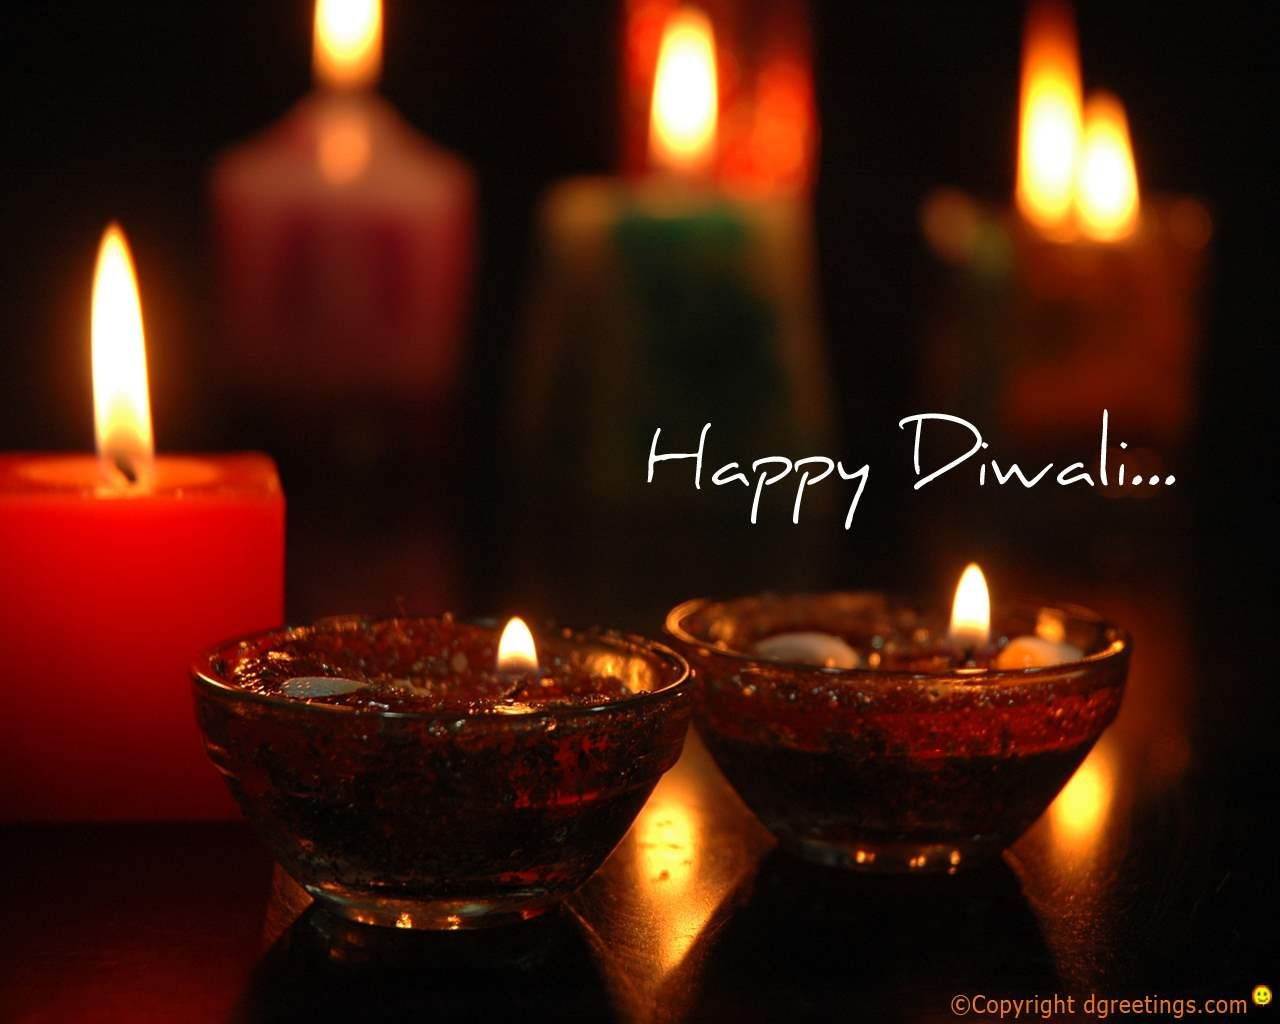 Full hd diwali wallpapers and greeting cards happy diwali free diwali ecardsfree diwali greeting cardshappy diwali cards diwali wallpapersall information are available in this site kristyandbryce Image collections